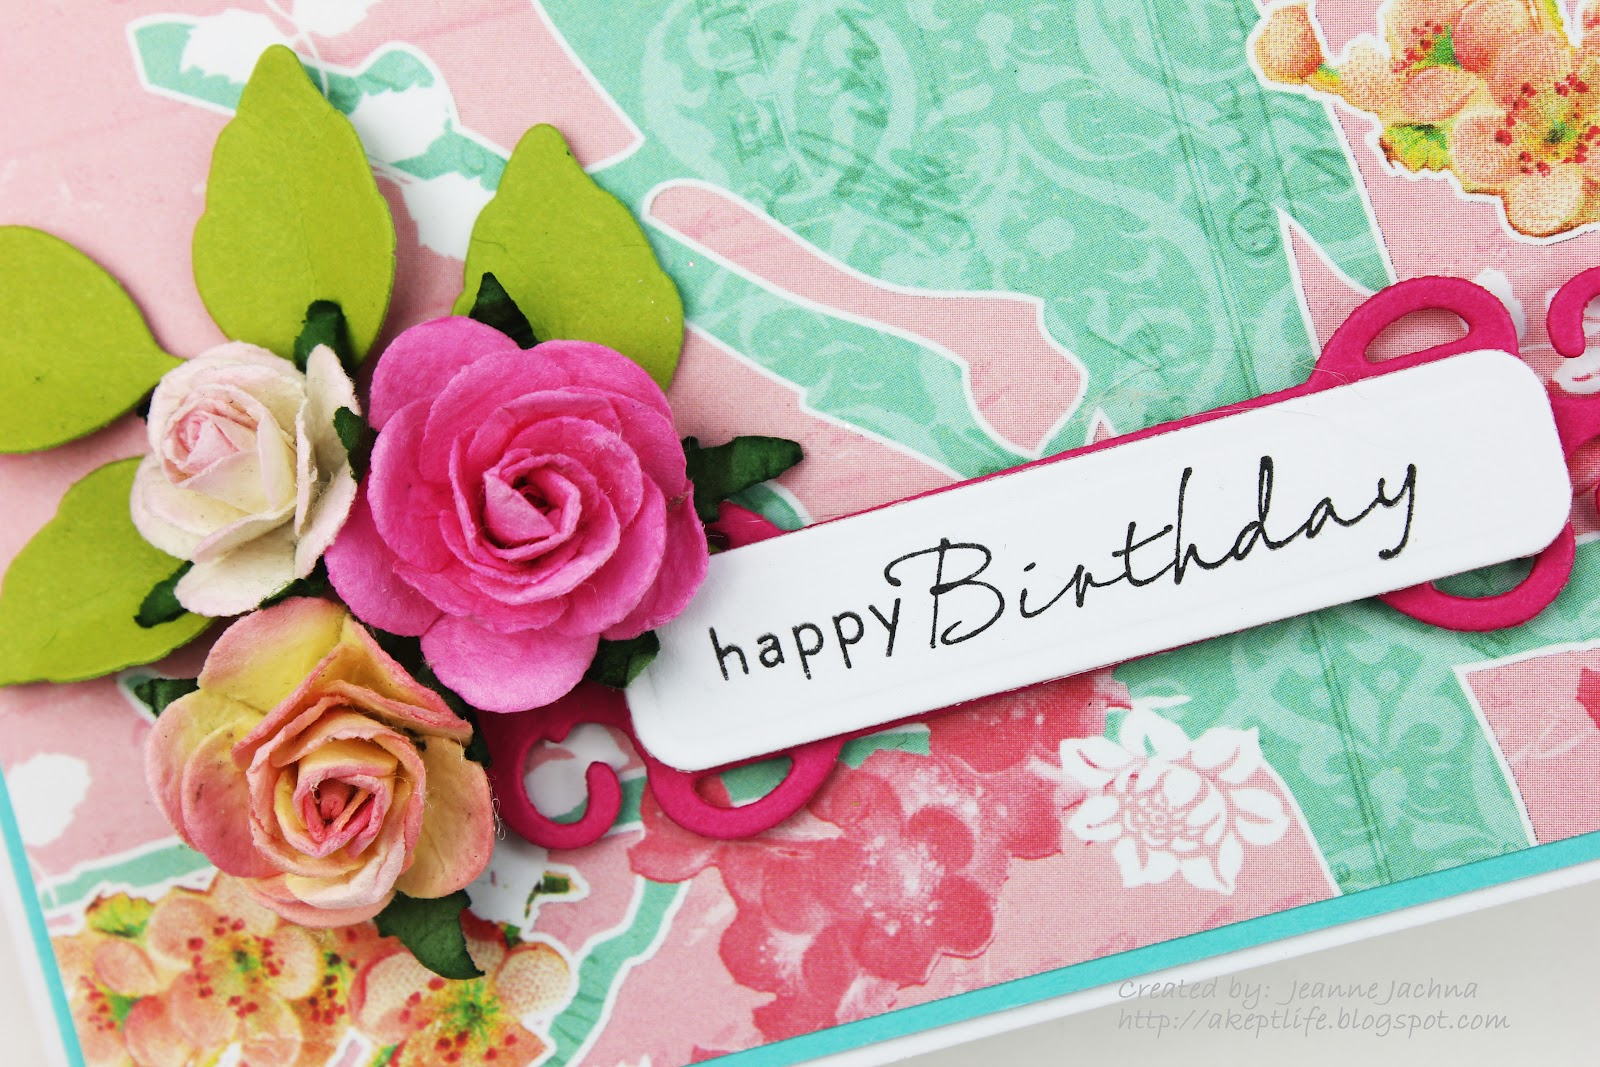 Happy birthday flowers best birthday happy birthday flowers izmirmasajfo Choice Image